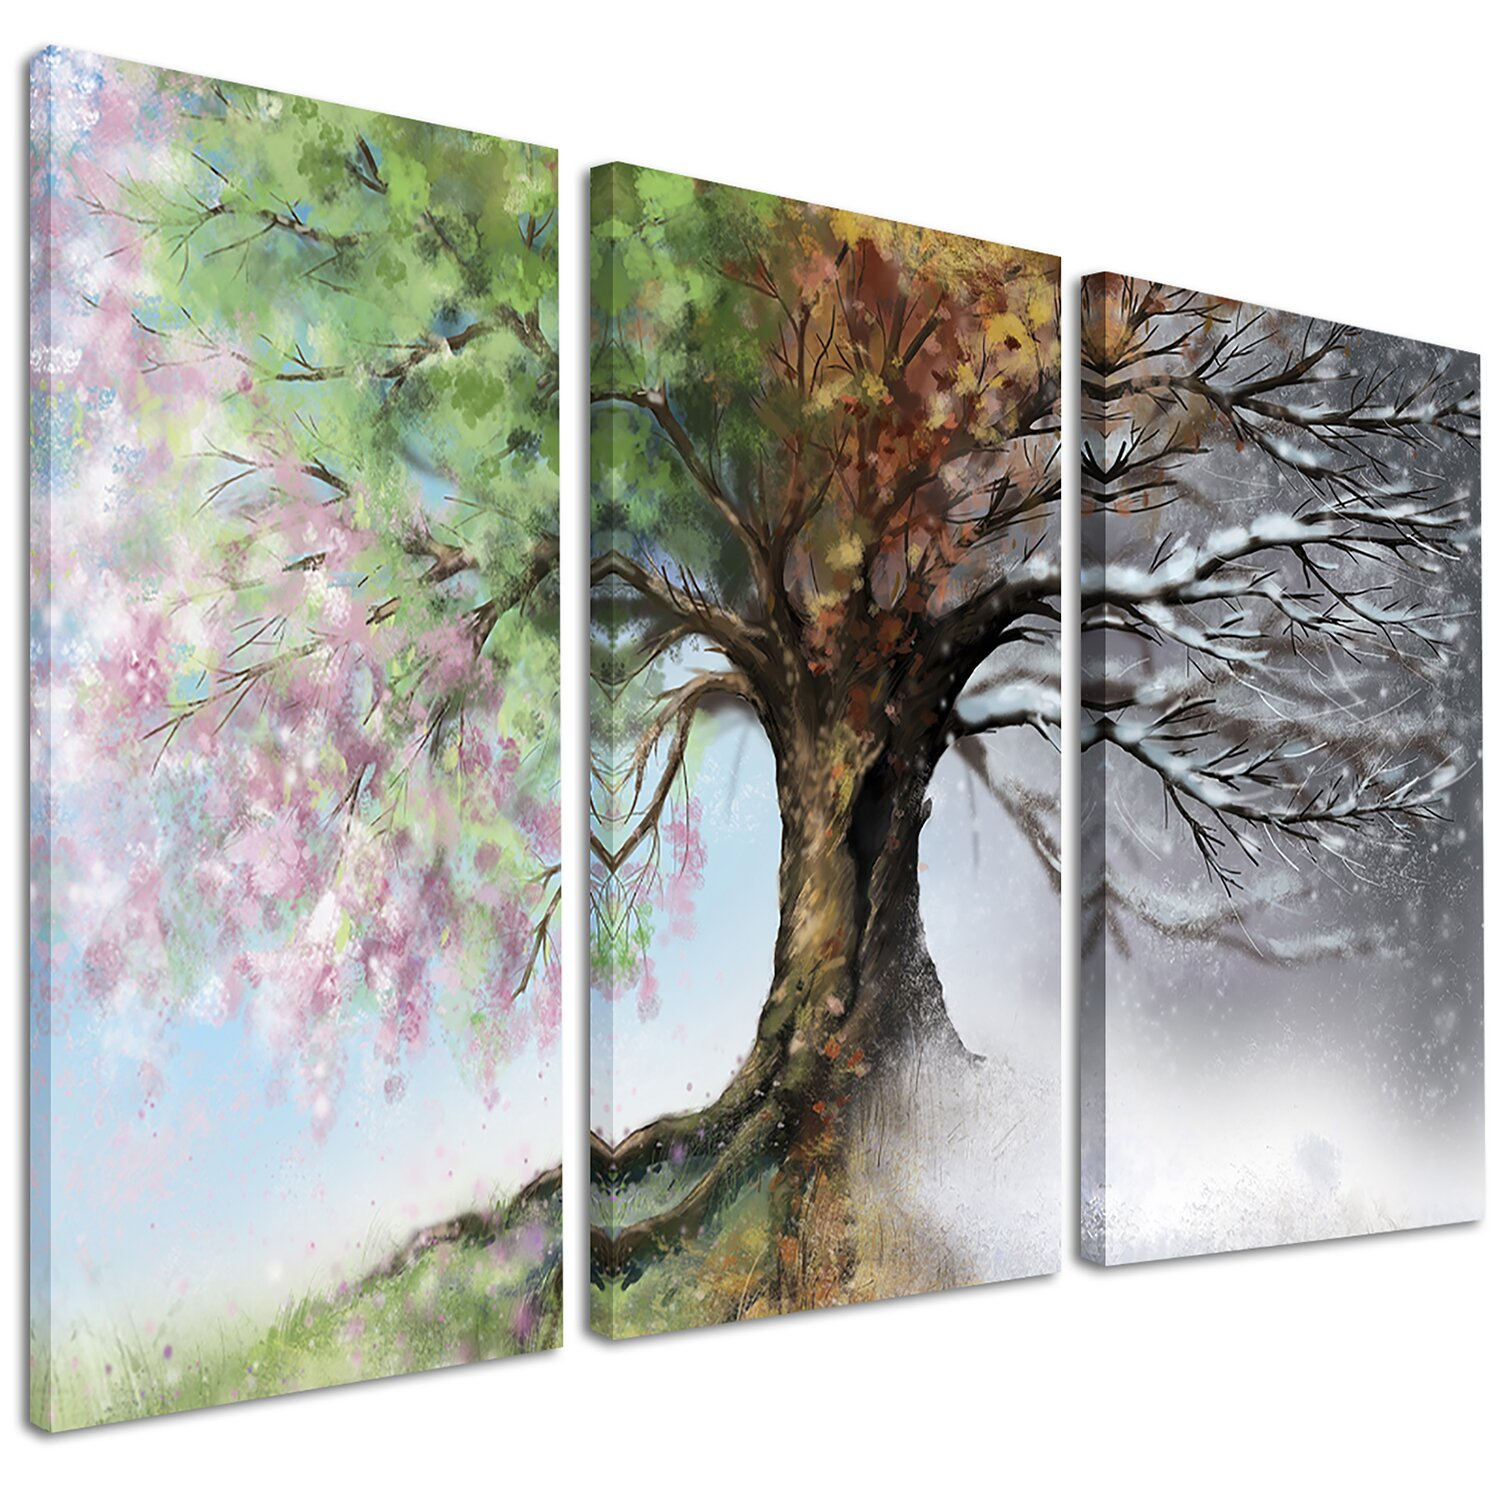 DesignArt Tree With Four Seasons 3 Piece Graphic Art On